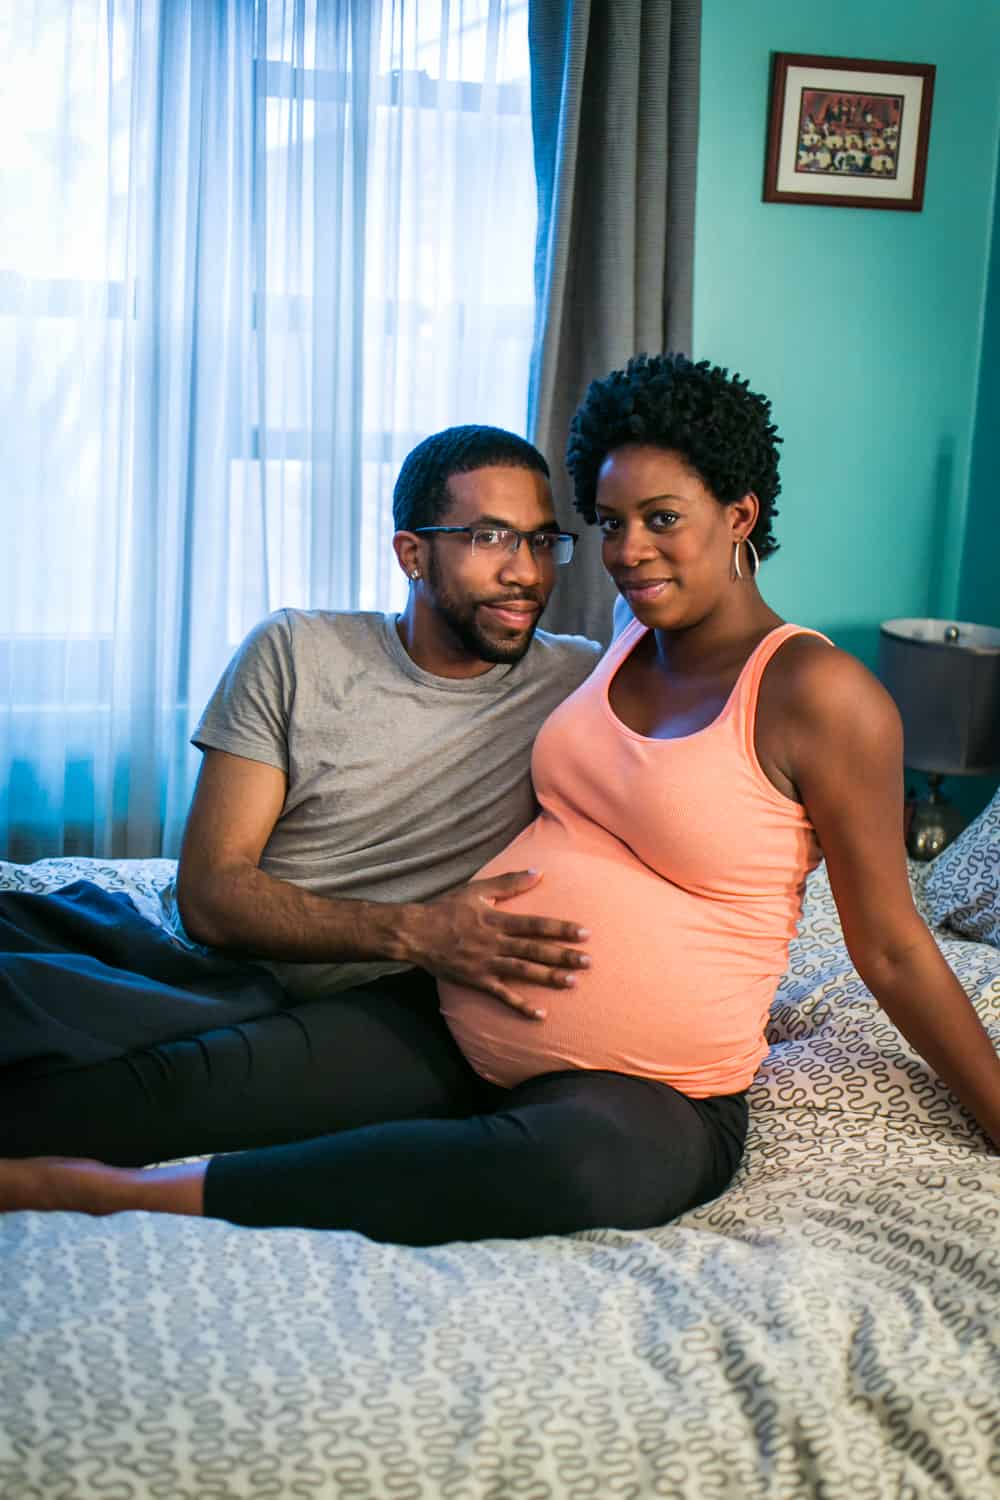 Parents-to-be sitting on bed by Queens maternity photographer